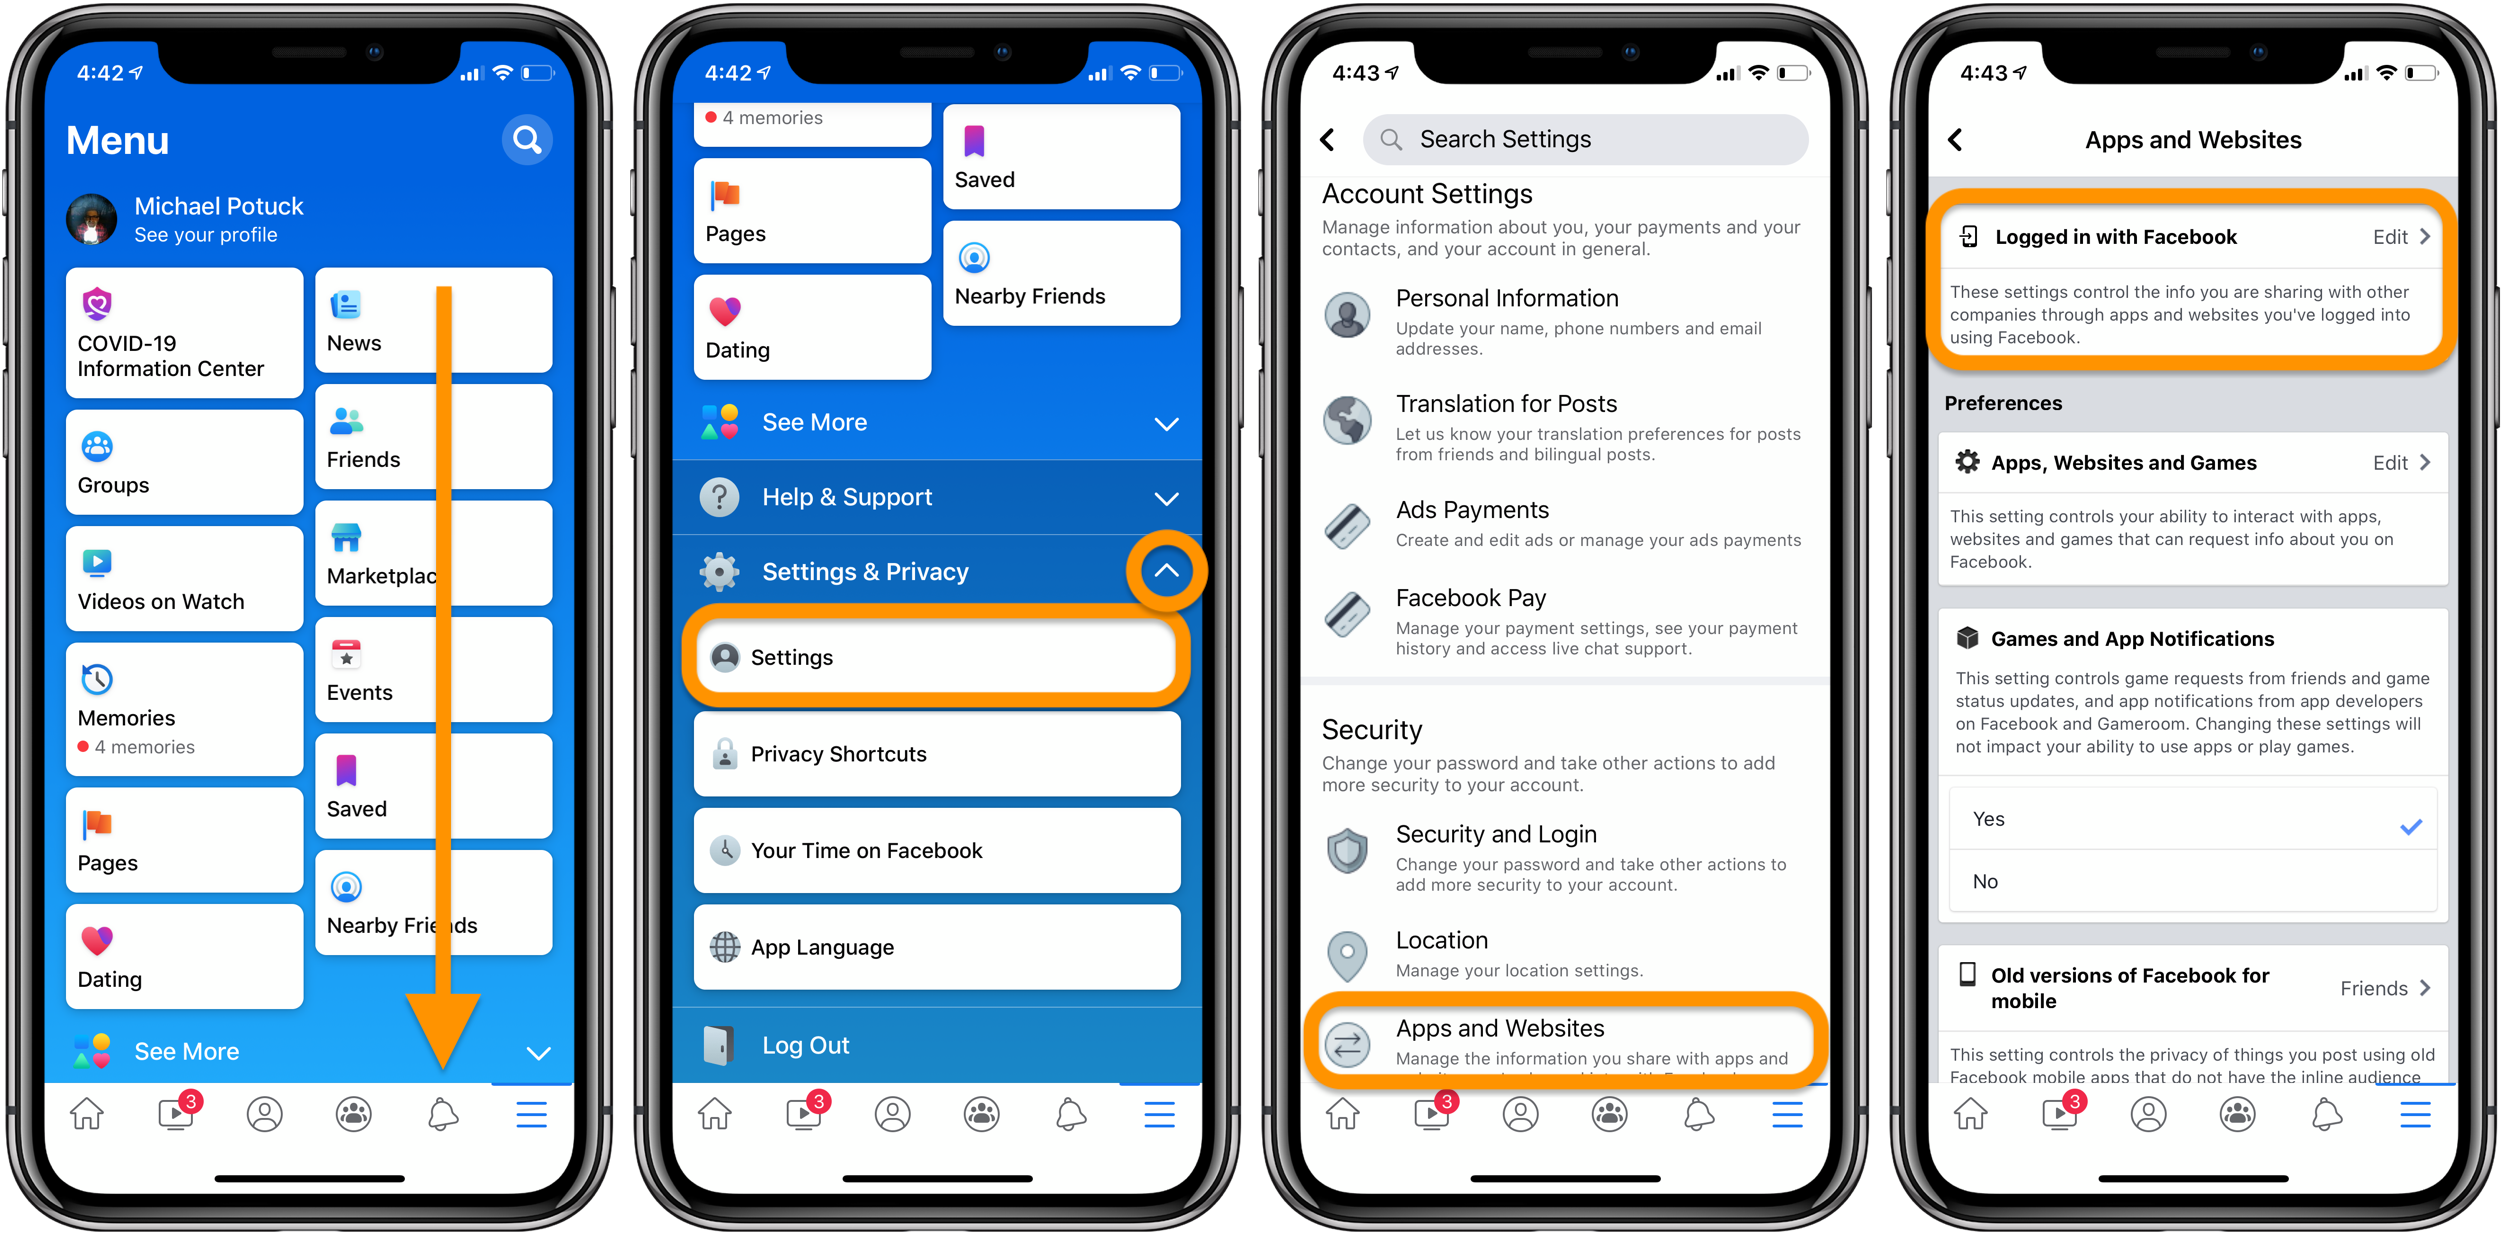 how to delete Logged in with Facebook apps and websites iPhone